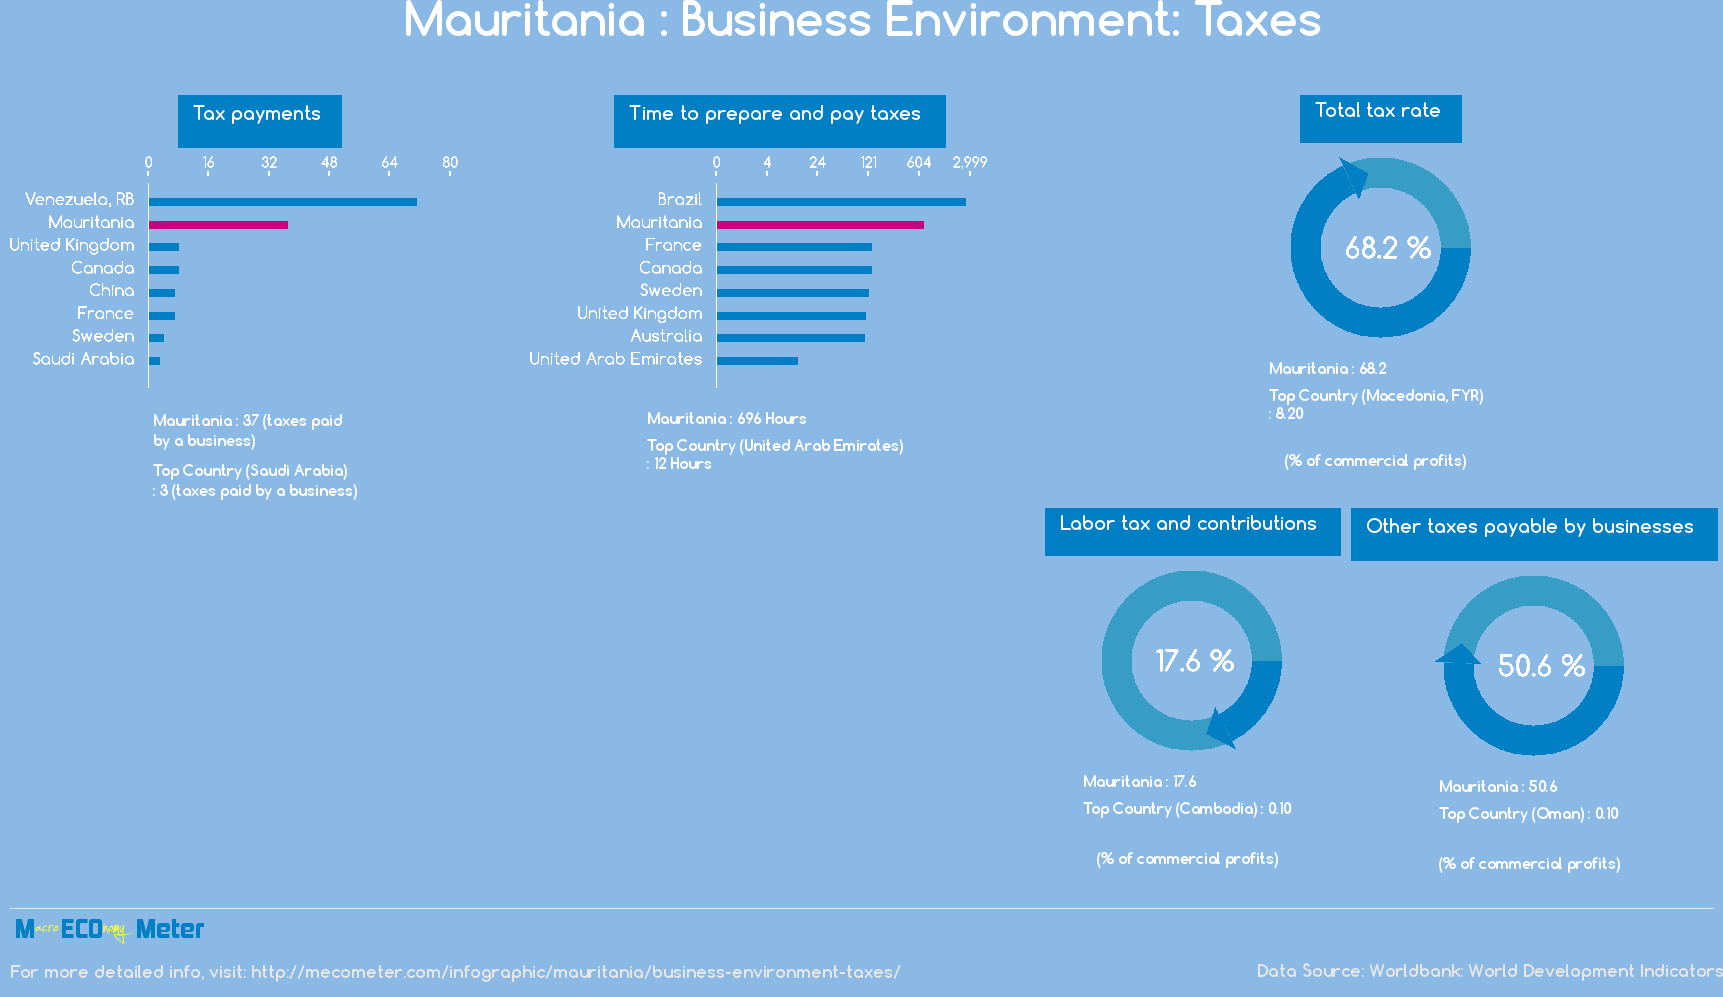 Mauritania : Business Environment: Taxes